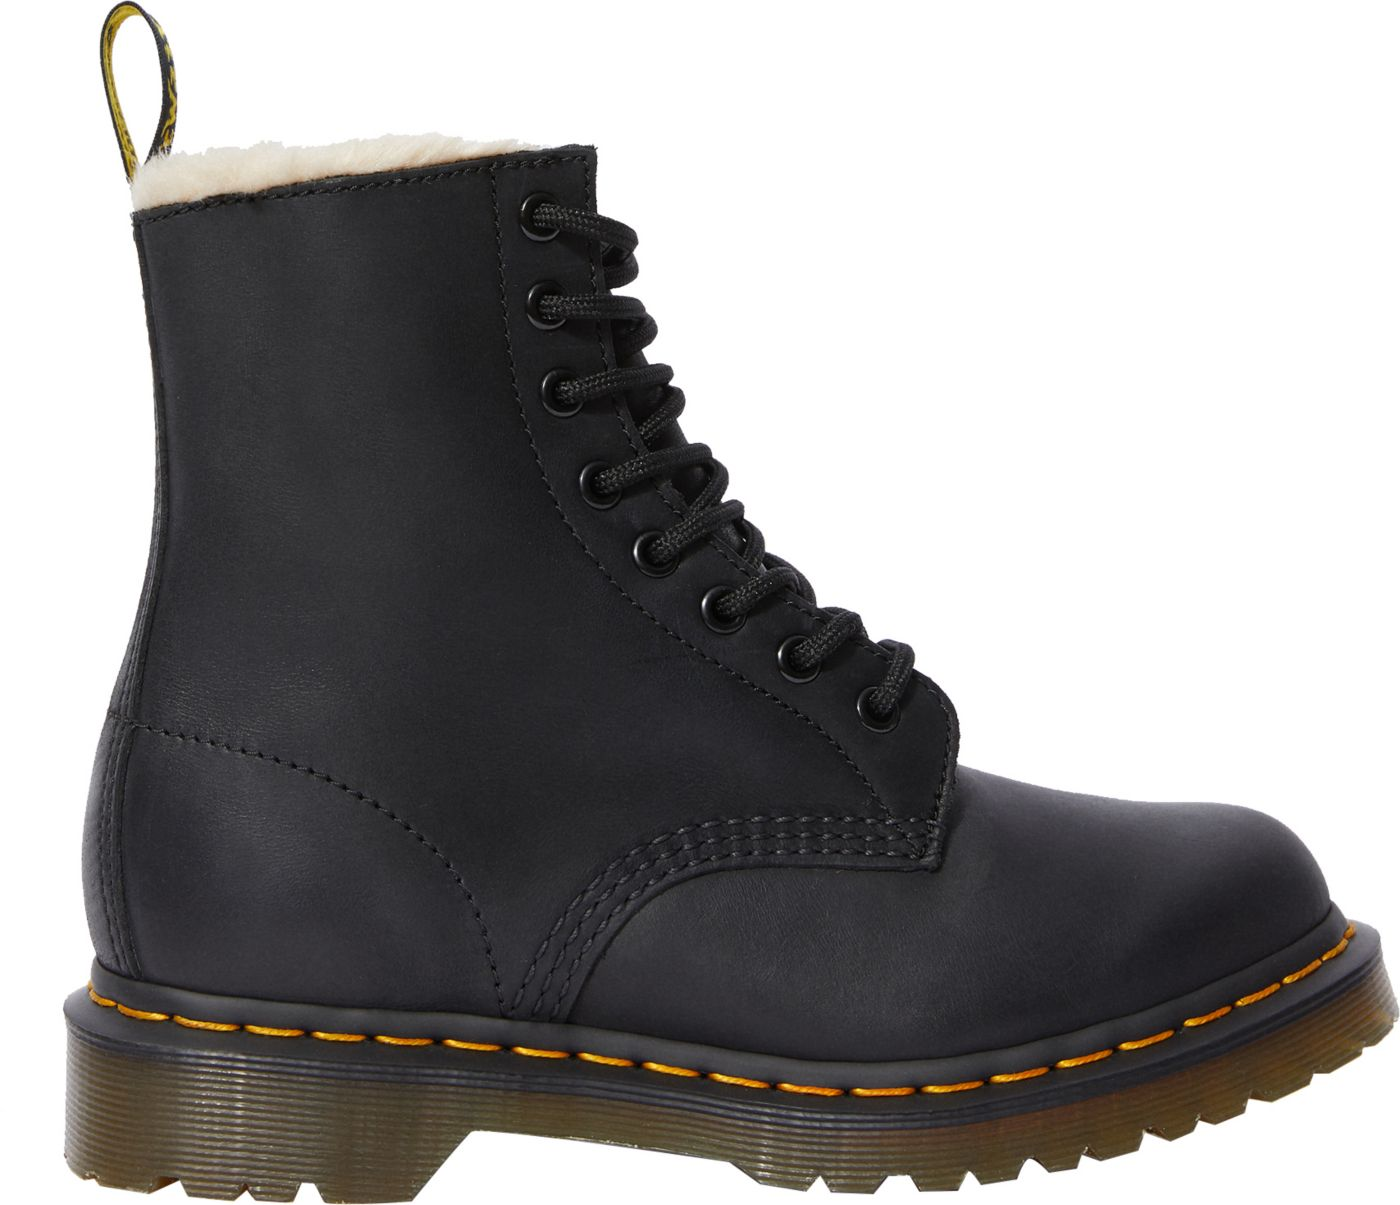 Dr. Martens Women's 1460 Serena Wyoming Lined Winter Boots